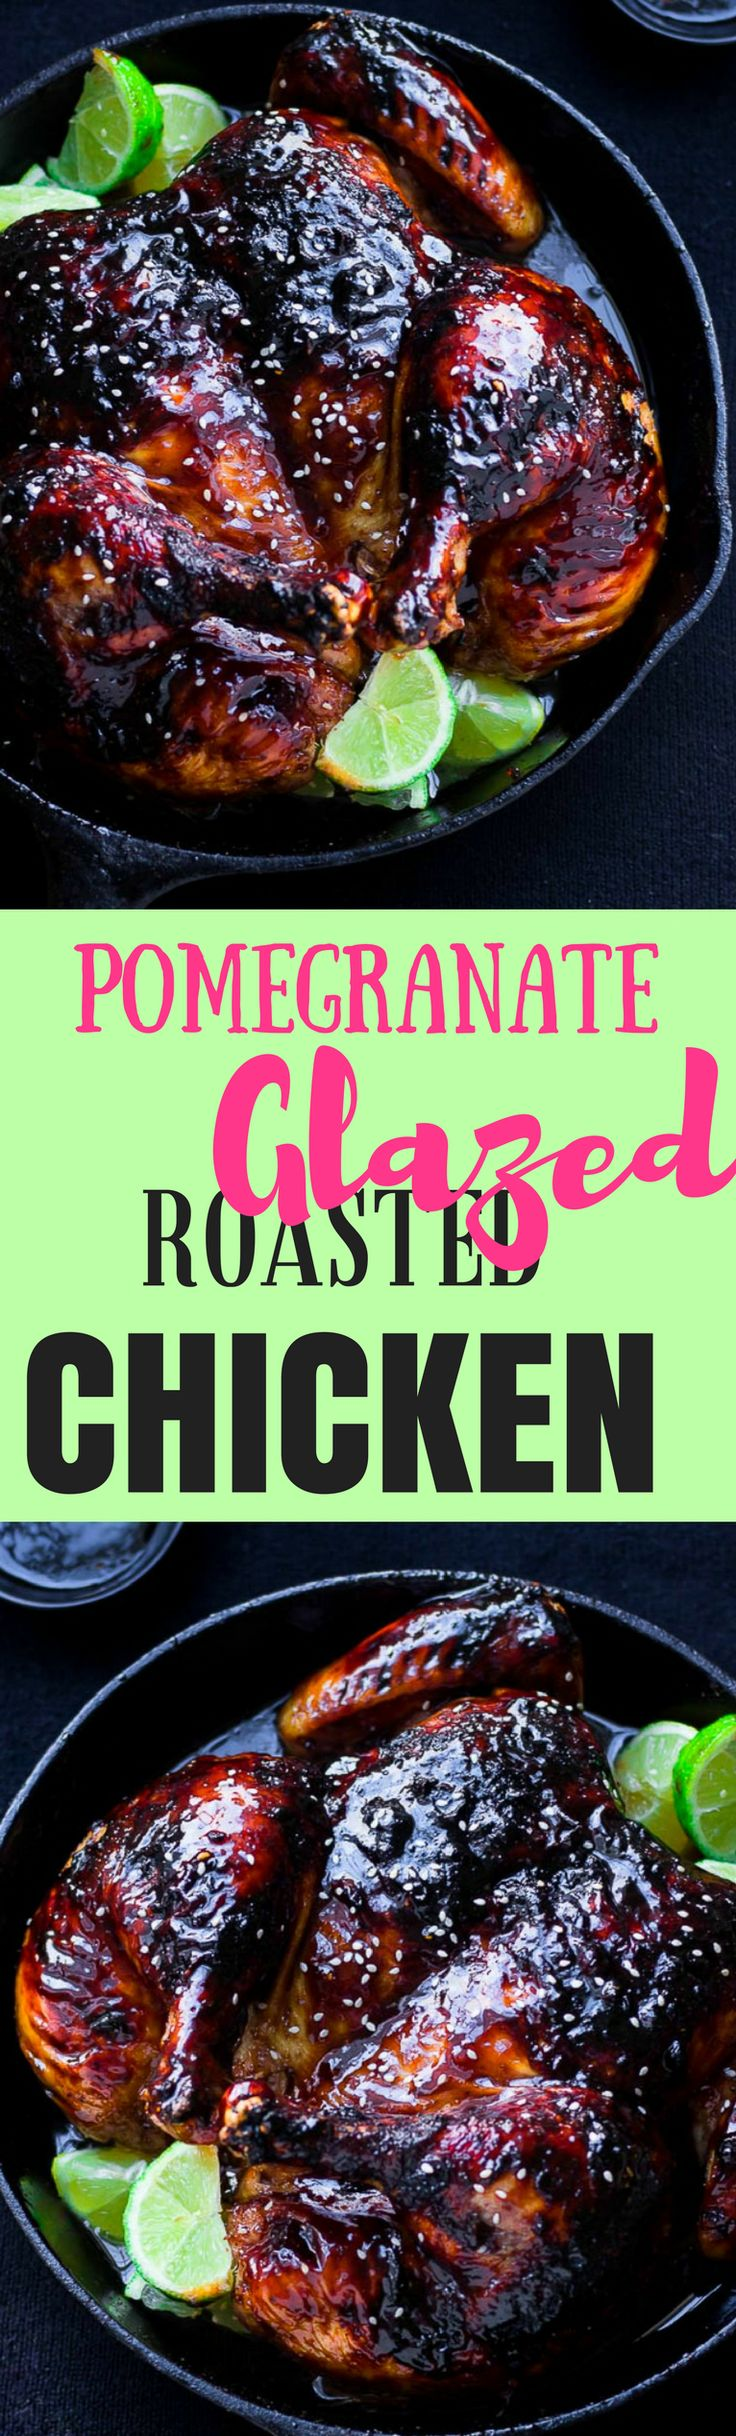 Pull dinner together in a jiffy with this delicious and super easy to prepare pomegranate lime glazed roast chicken recipe. It tastes just as good as it looks!